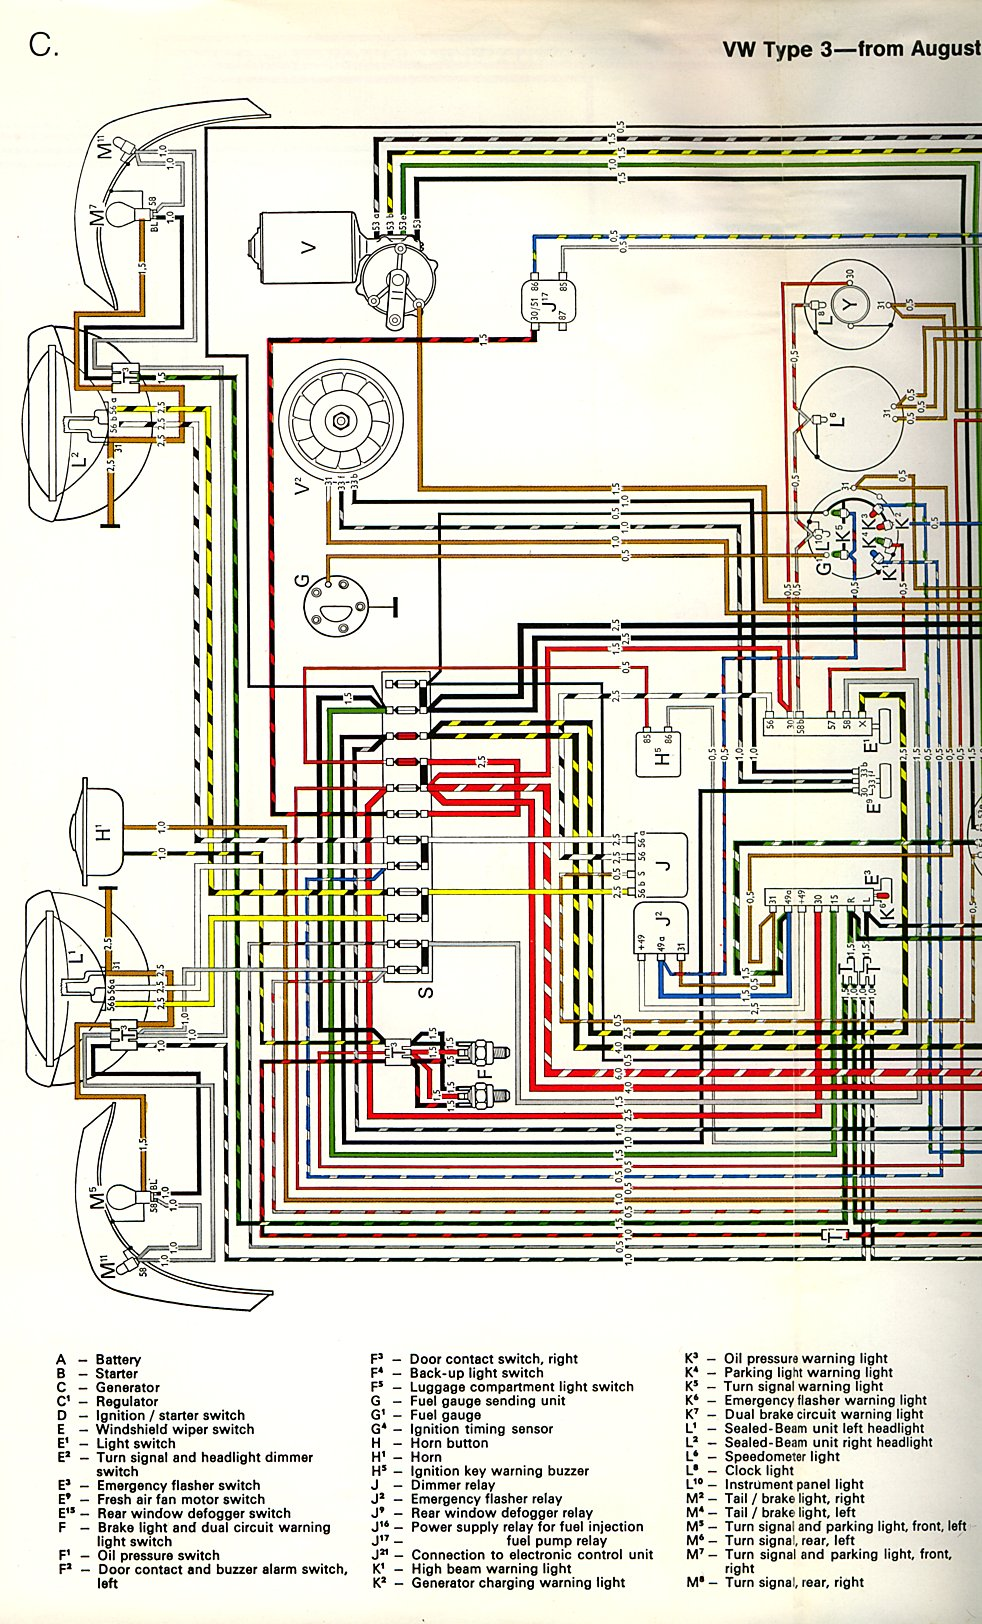 79 Chevy Wiring Diagram Thesamba Com Type 3 Wiring Diagrams